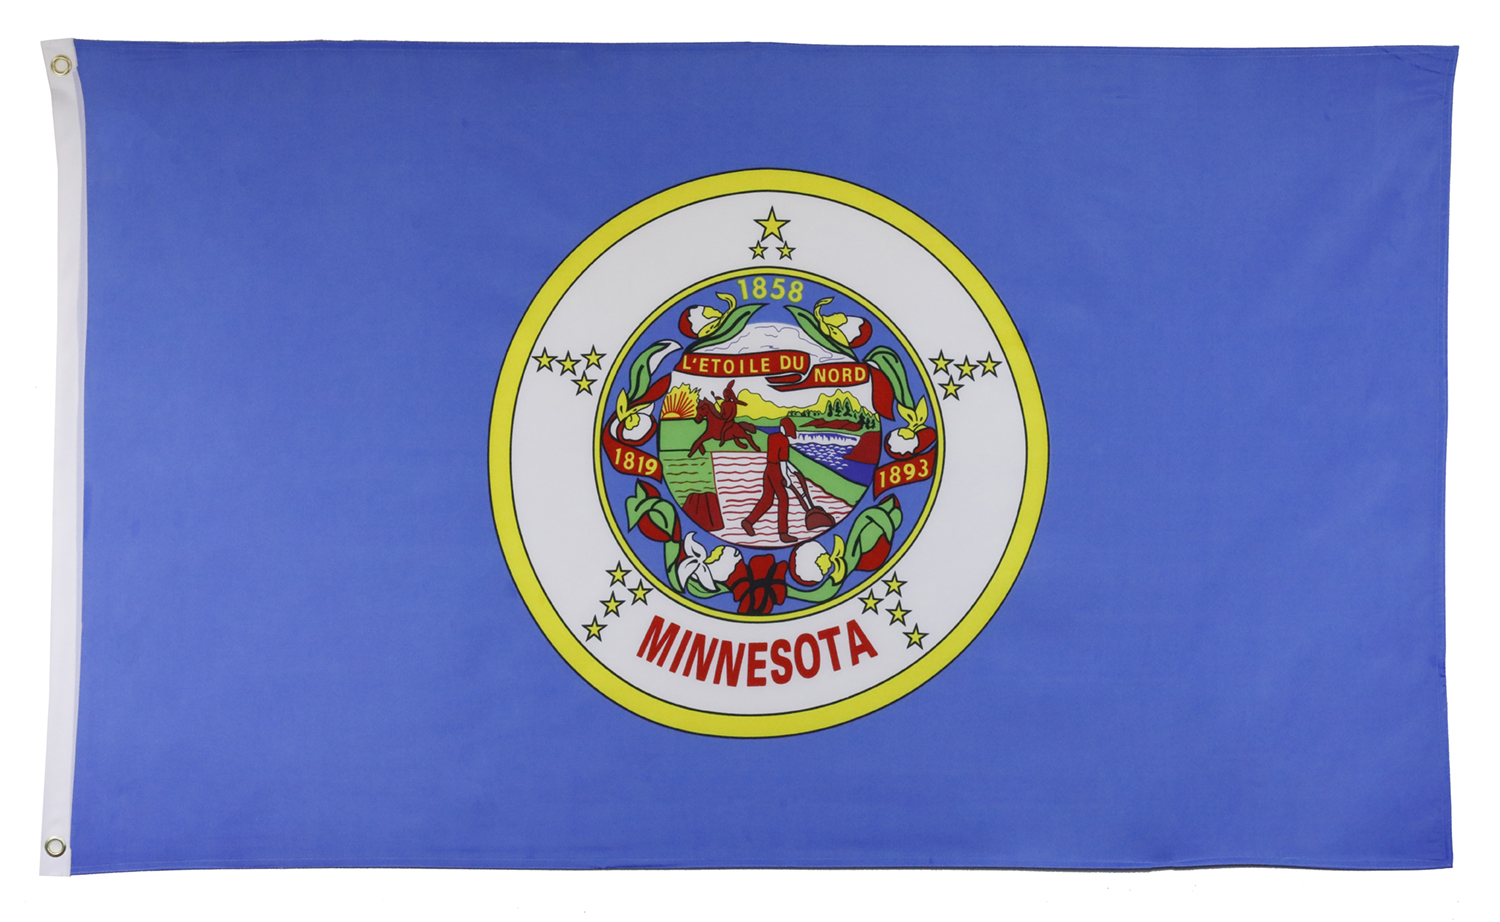 Shop72 US Minnesota State Flags - Minnesota Flag - 3x5' Flag from Sturdy 100D Polyester - Canvas Header Brass Grommets Double Stitched from Wind Side